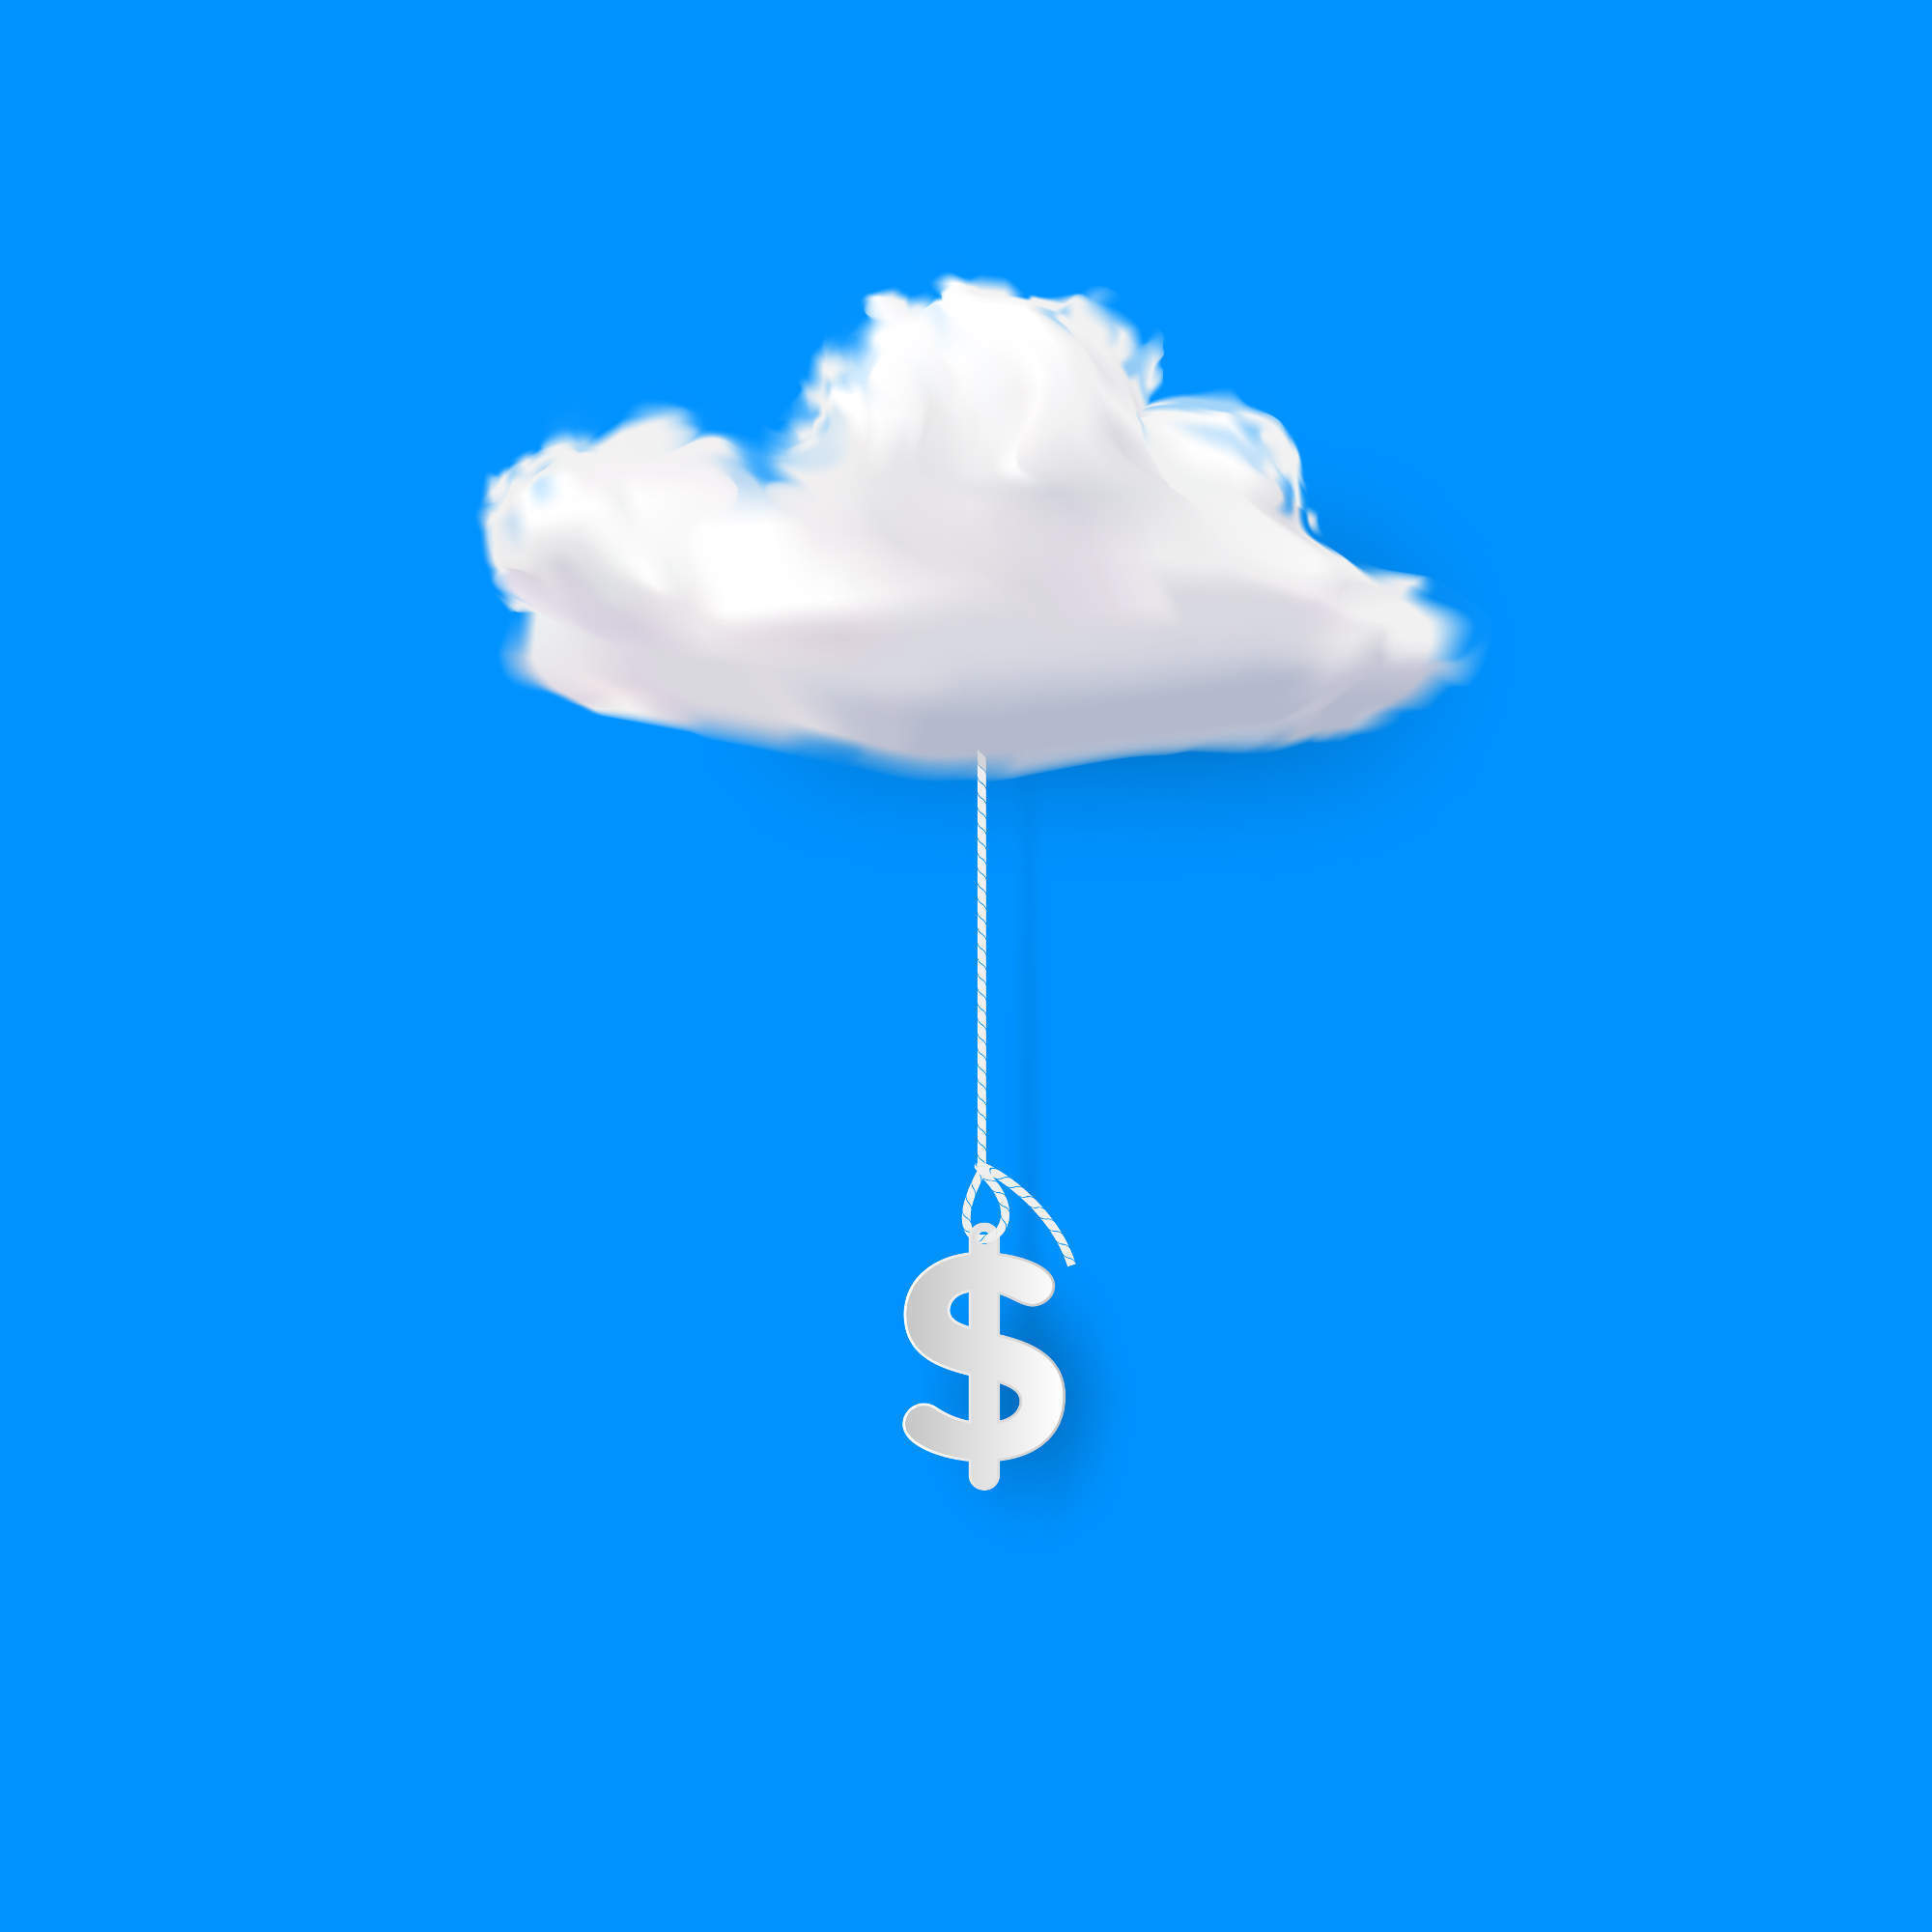 Cloud billing is taking off: is the sky the limit?